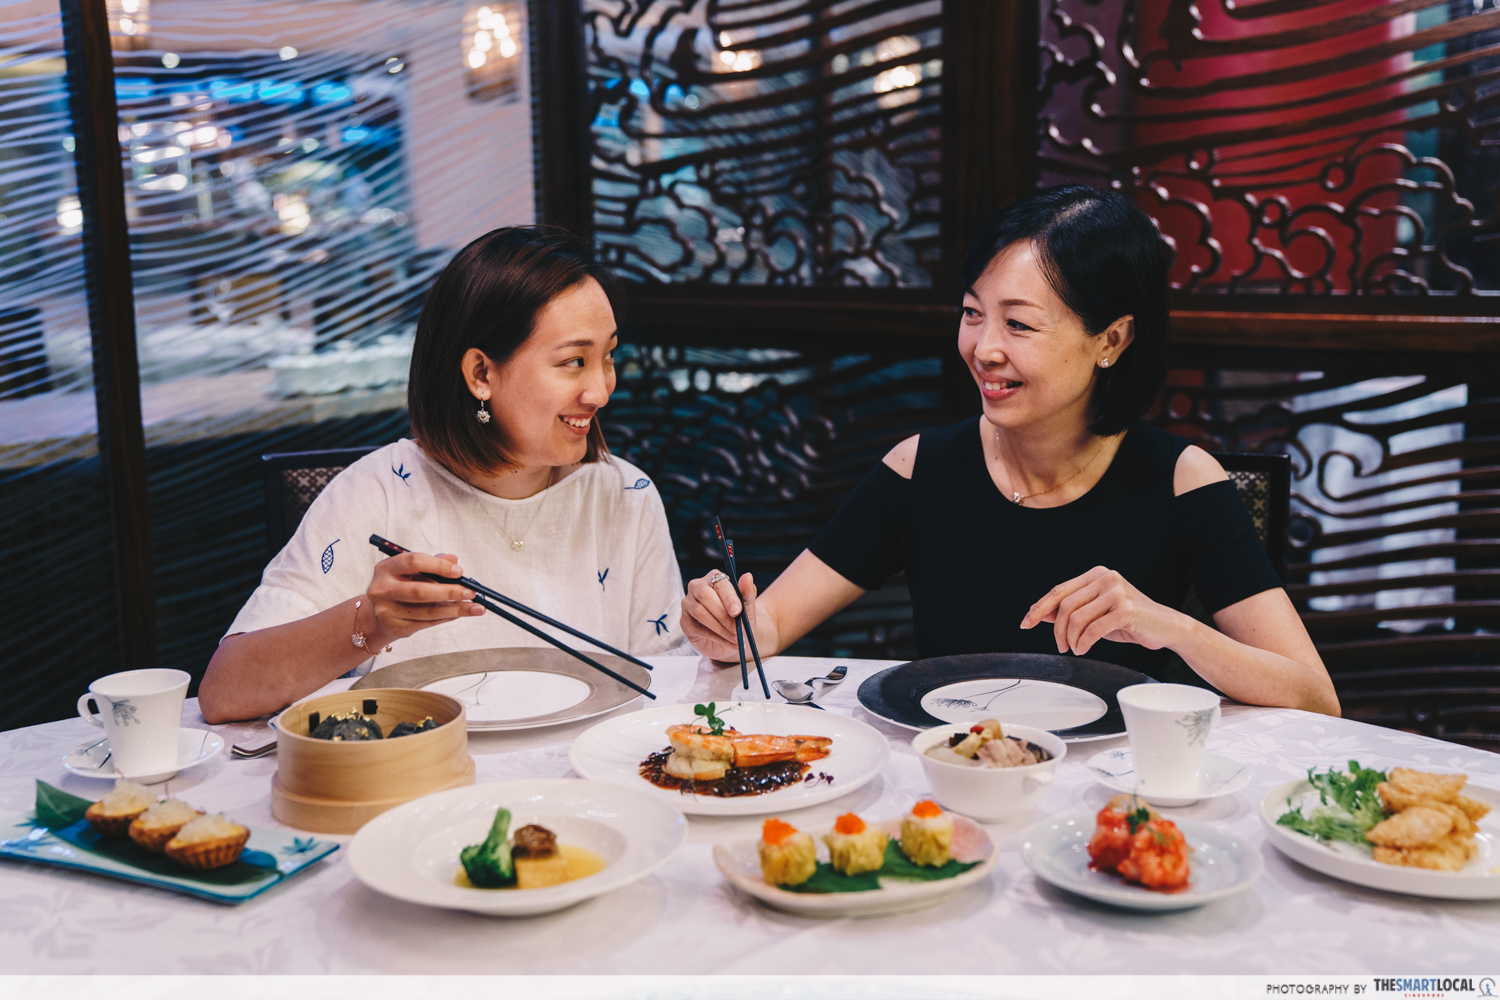 7 Mother's Day Restaurants In Singapore With Deals, Freebies & Gifts To Score Points With Mum